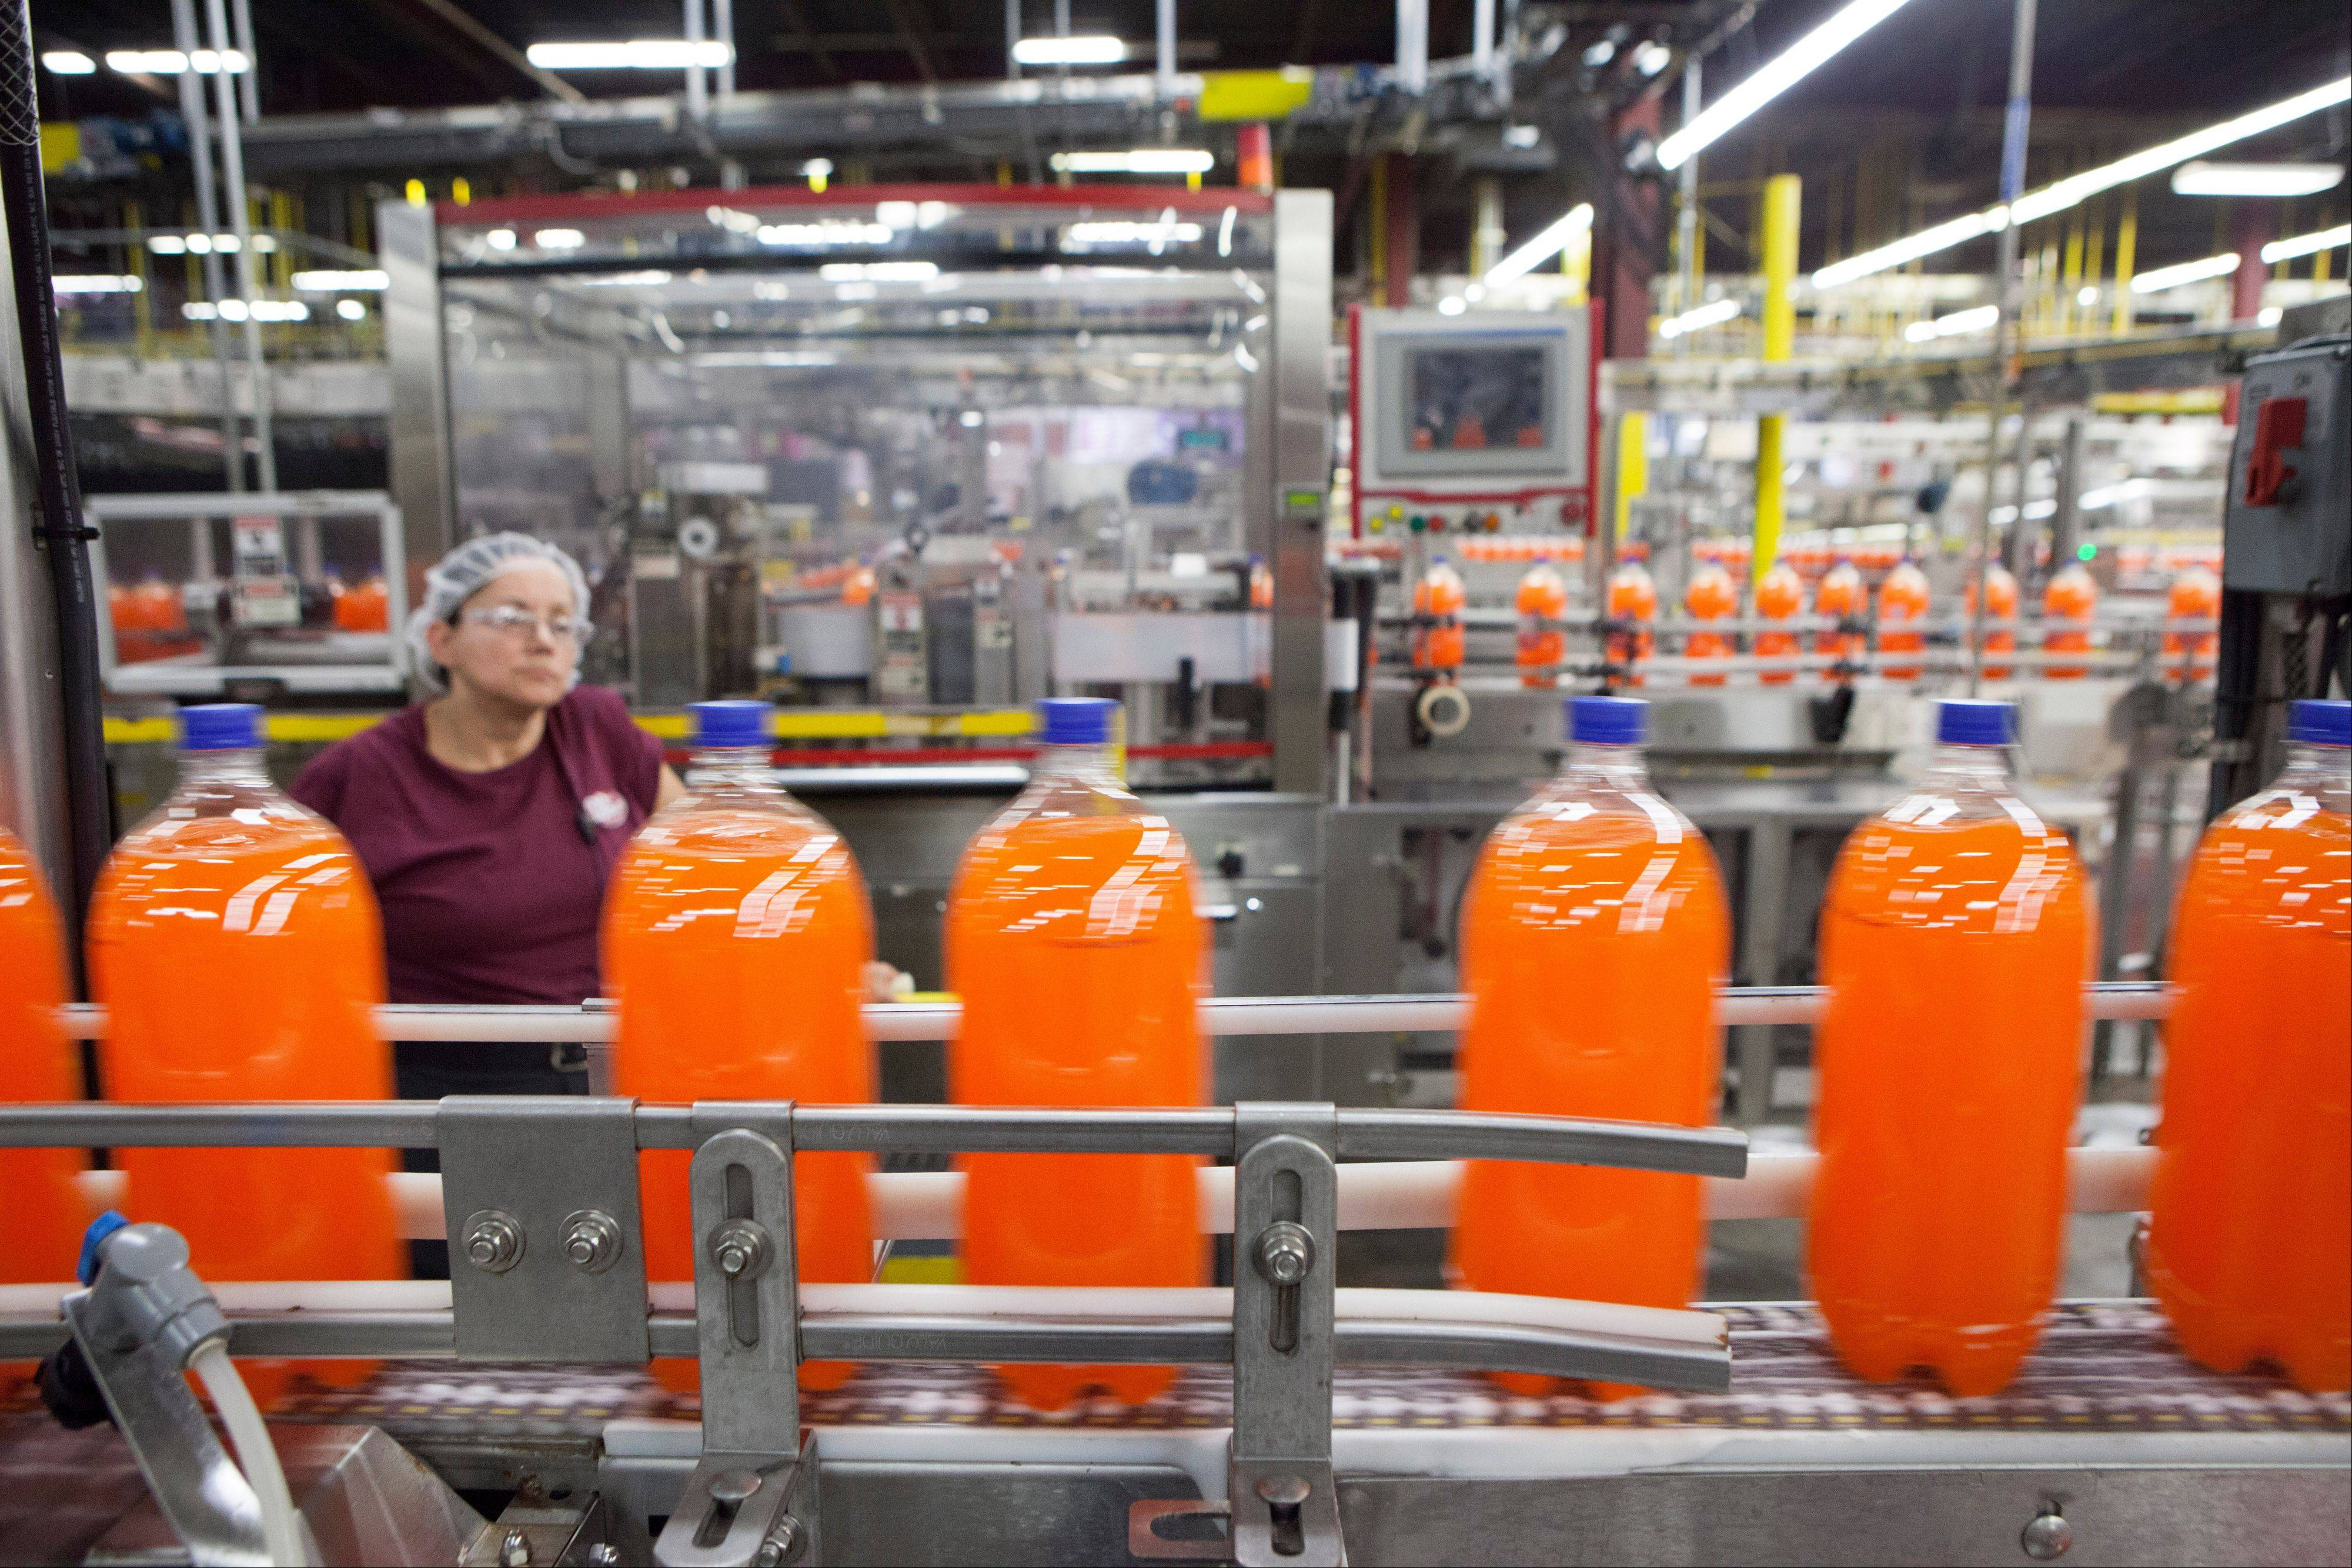 Bottles of Sunkist move down the line at the Dr Pepper Snapple bottling plant in Houston. Beverage companies have been teaming up with environmental groups to preserve and conserve water and watersheds, most recently Dr Pepper with the Nature Conservancy on watersheds that the company draws on directly for its product.